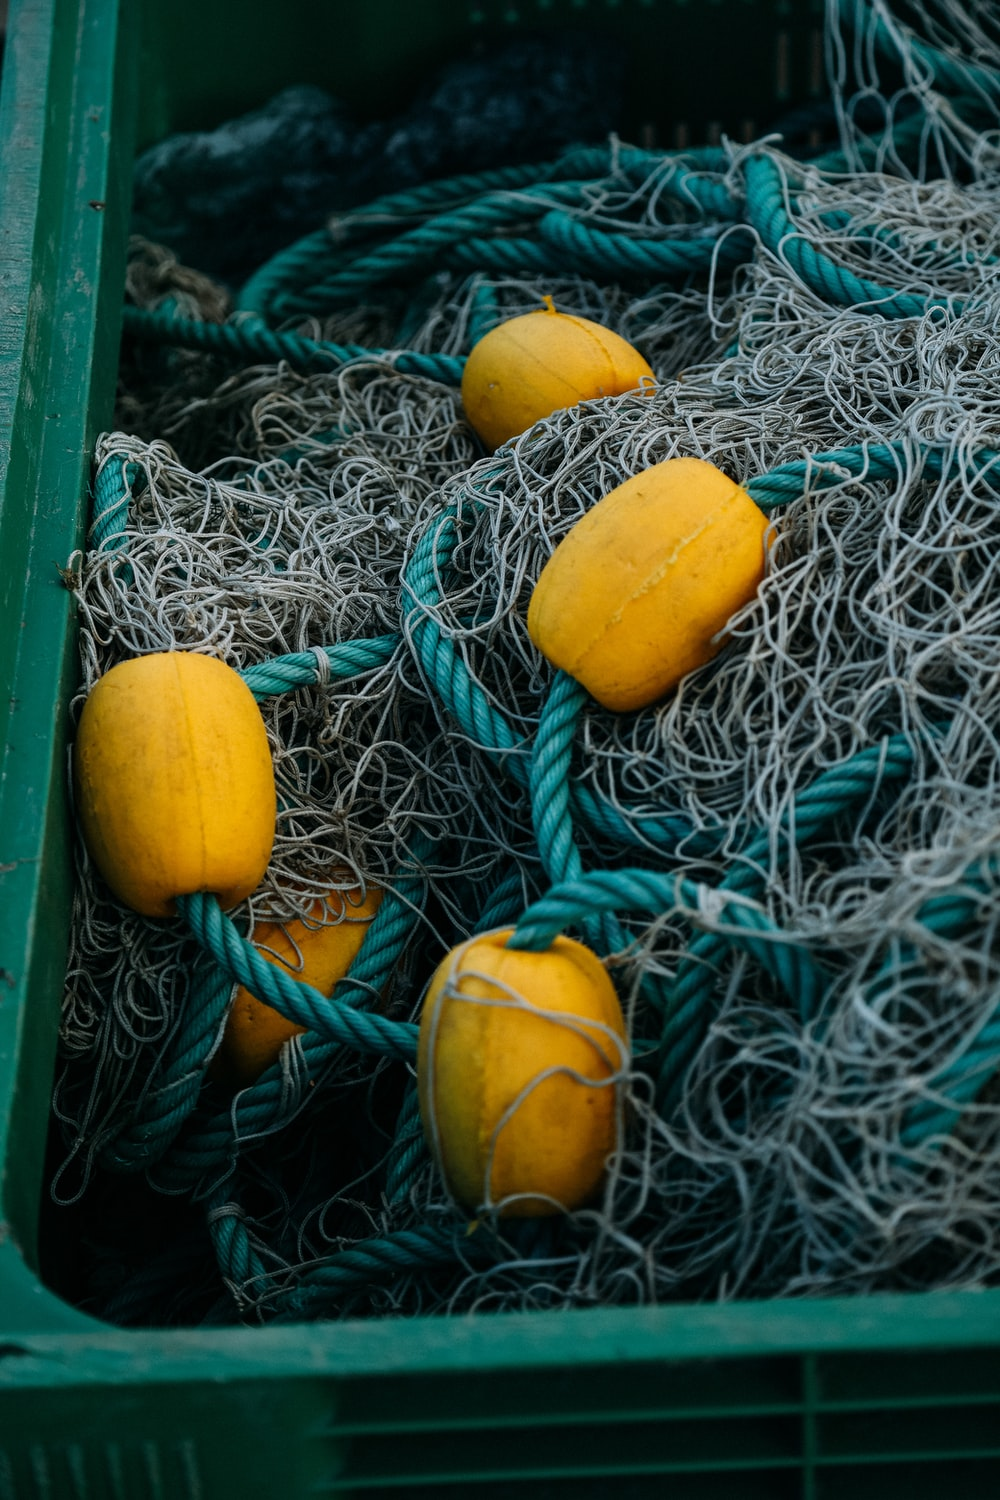 yellow round fruit on green and blue rope